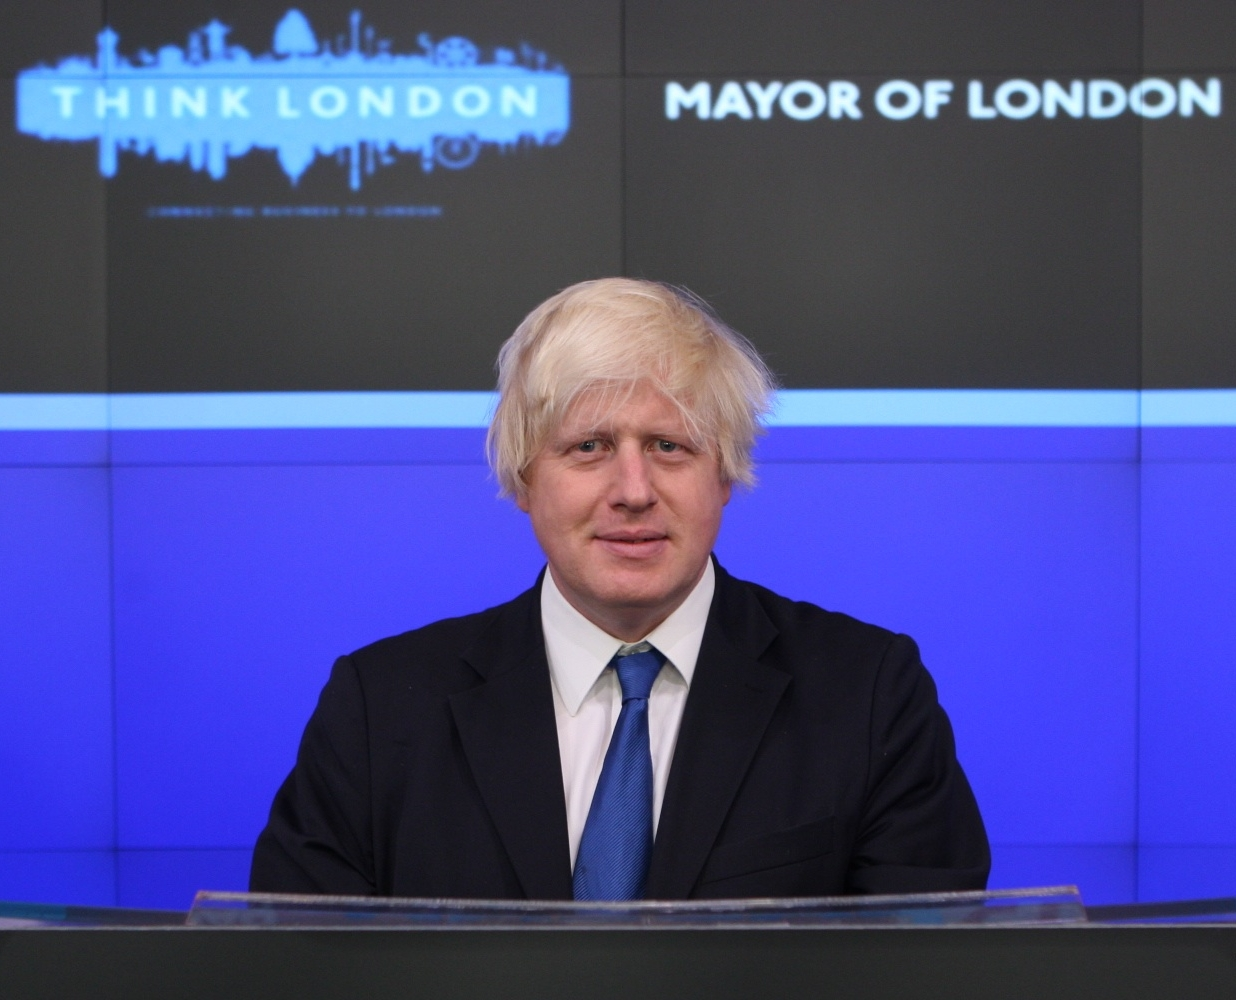 Boris_Johnson_-opening_bell_at_NASDAQ-14Sept2009-3c